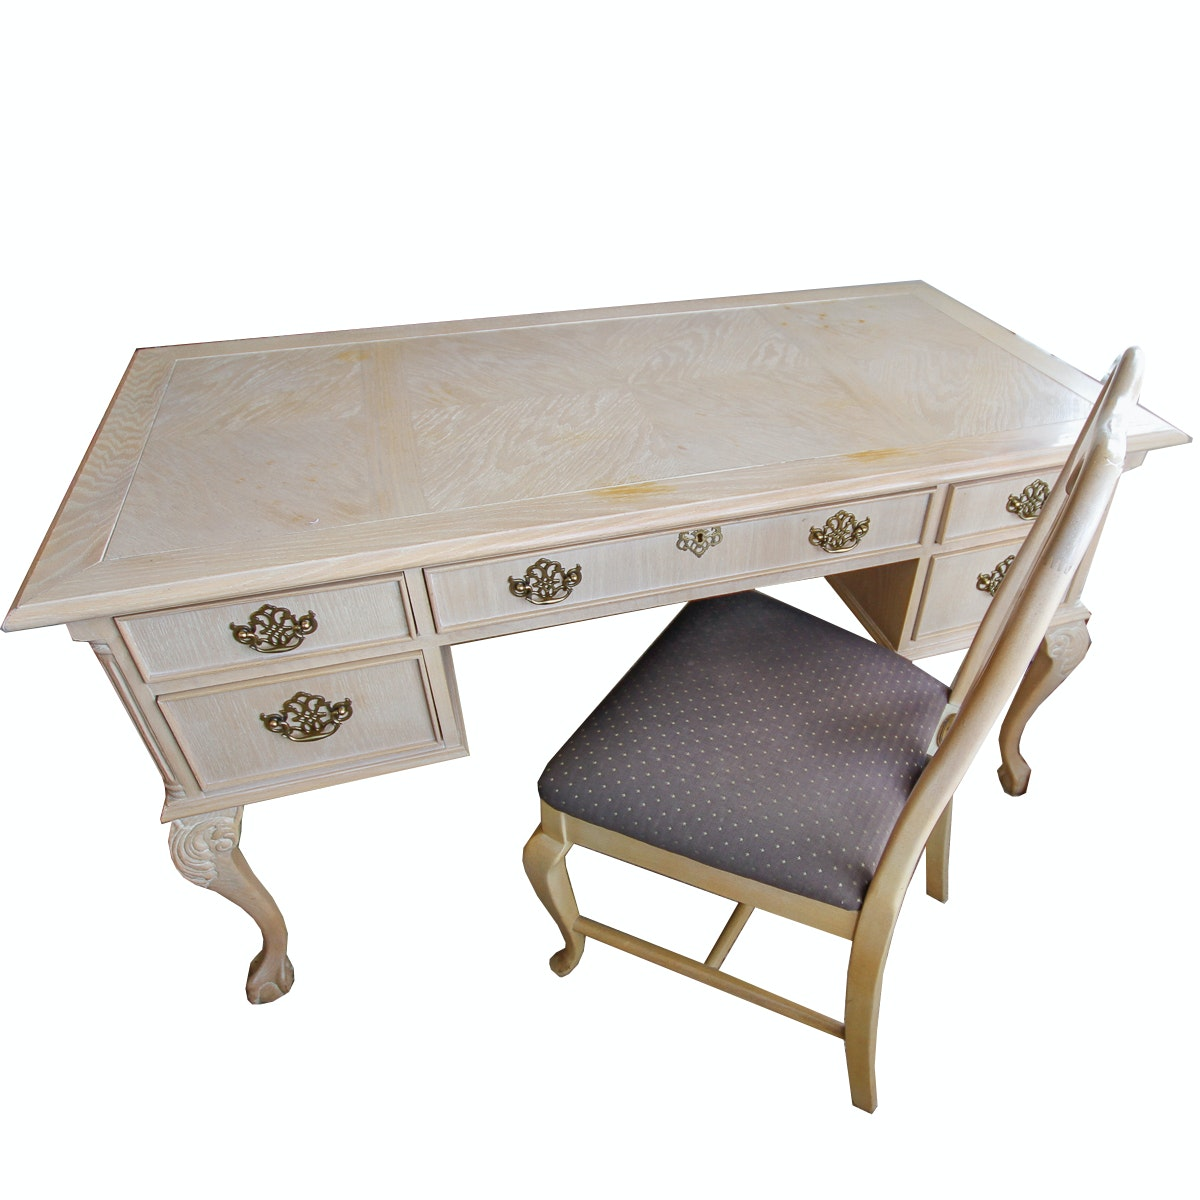 Chippendale Style Kneehole Desk with Chair